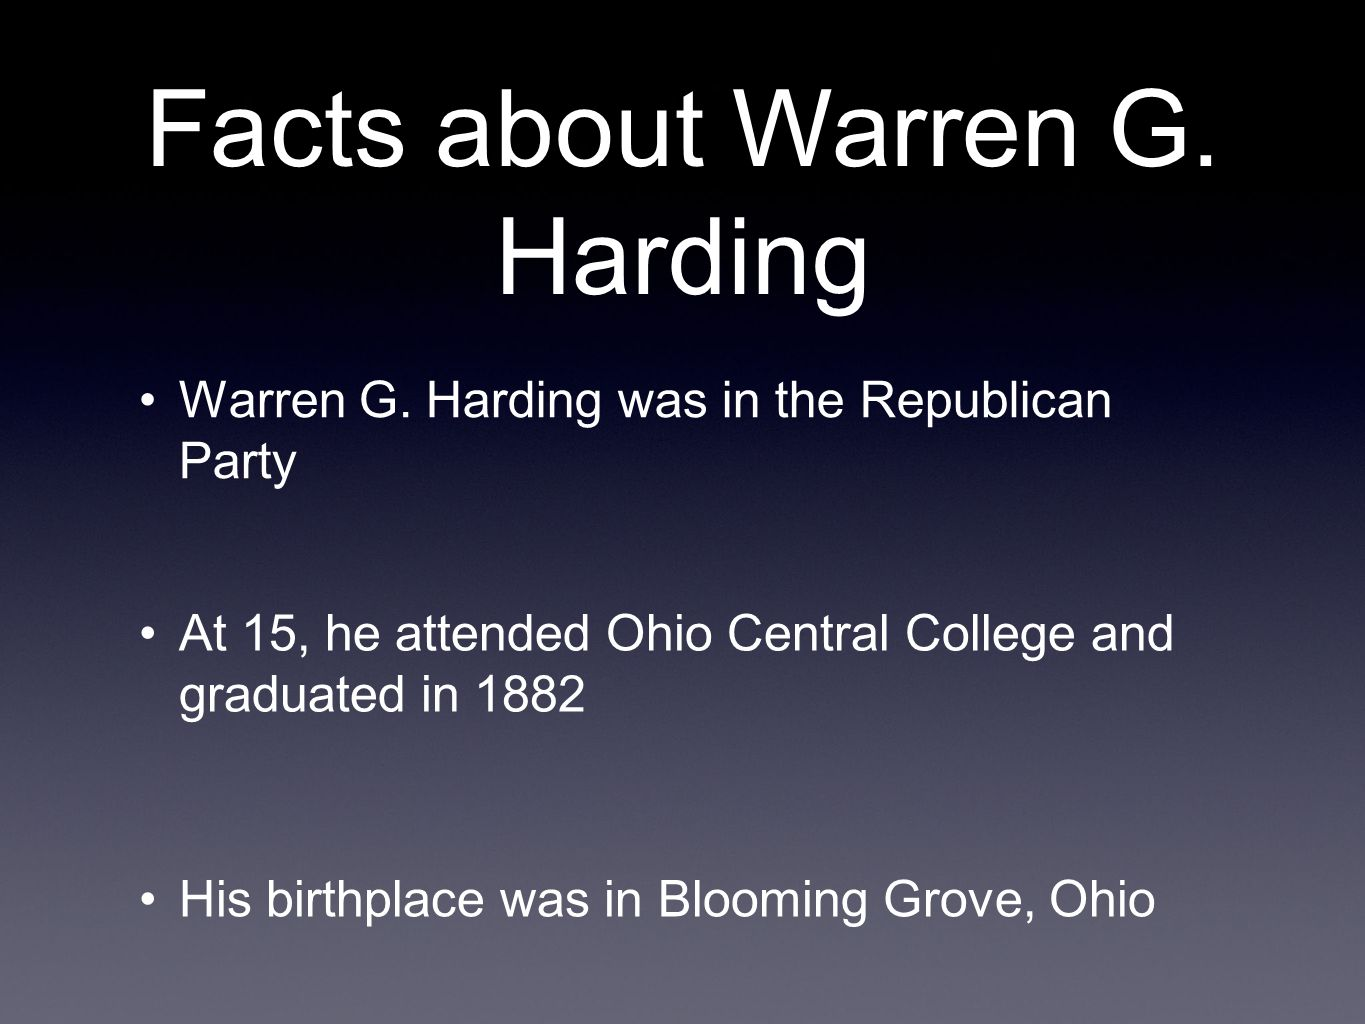 Facts about Warren G. Harding